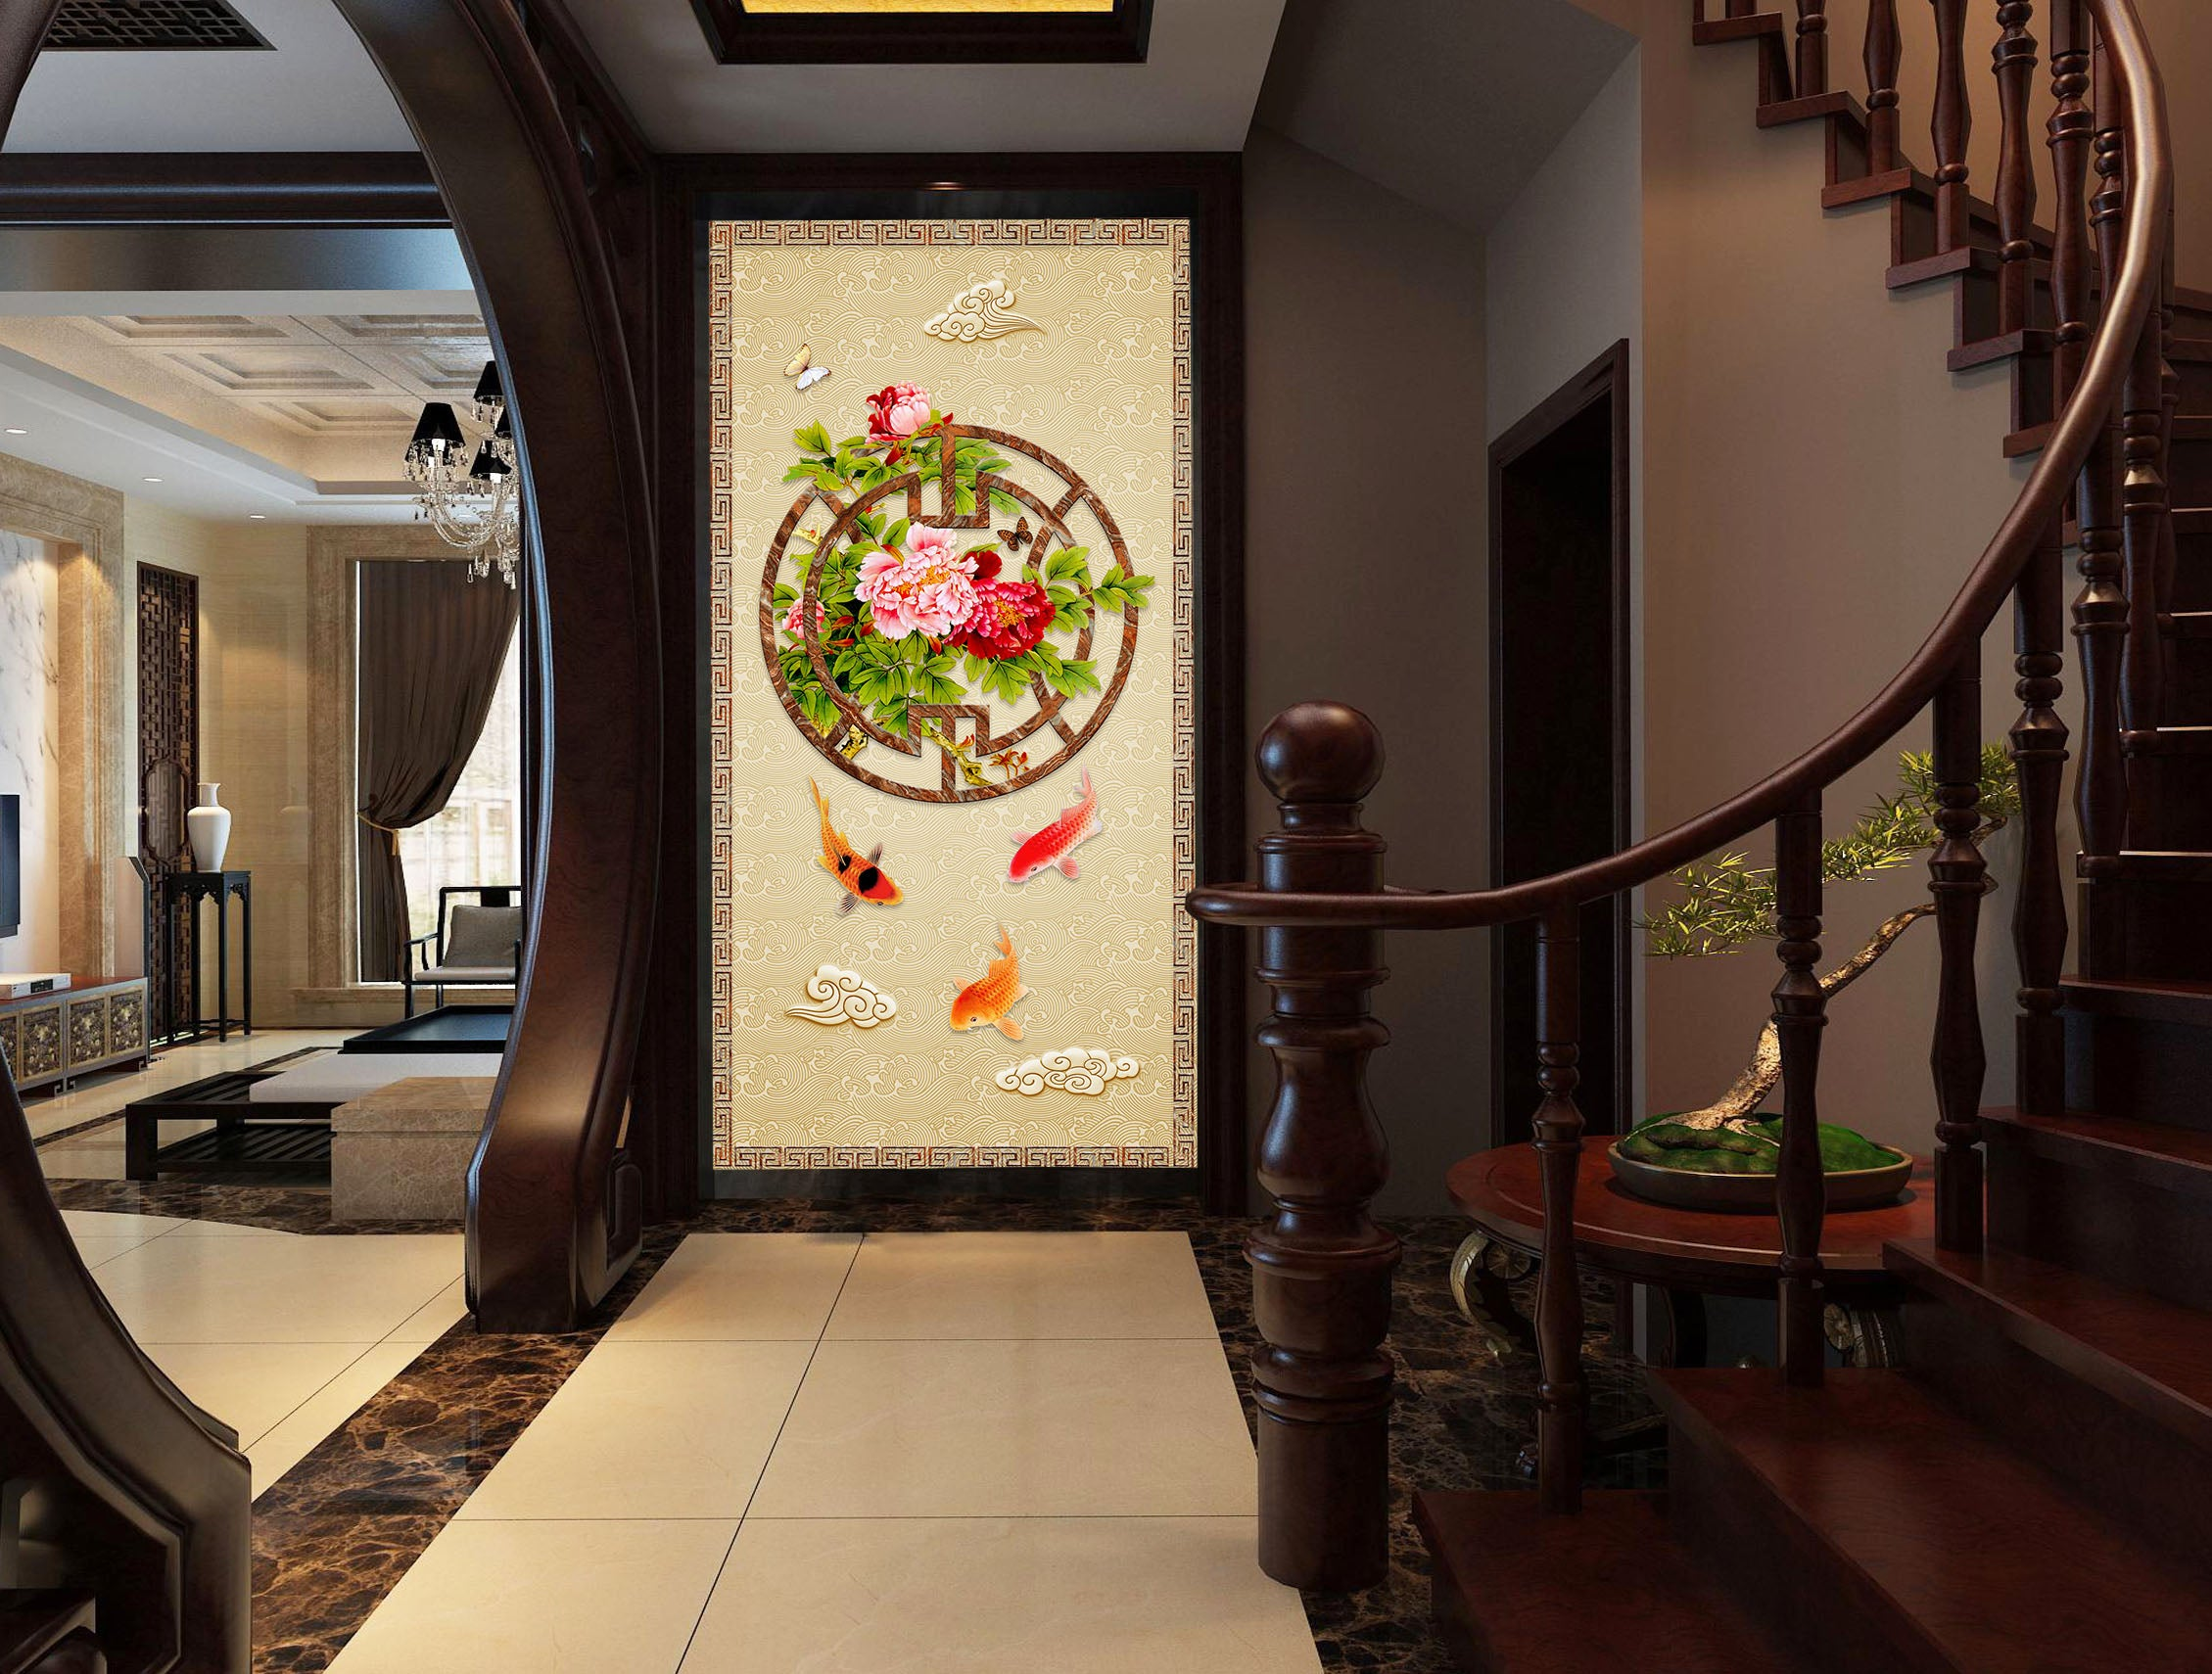 3D Lotus Pond Goldfish 3032 Wall Murals